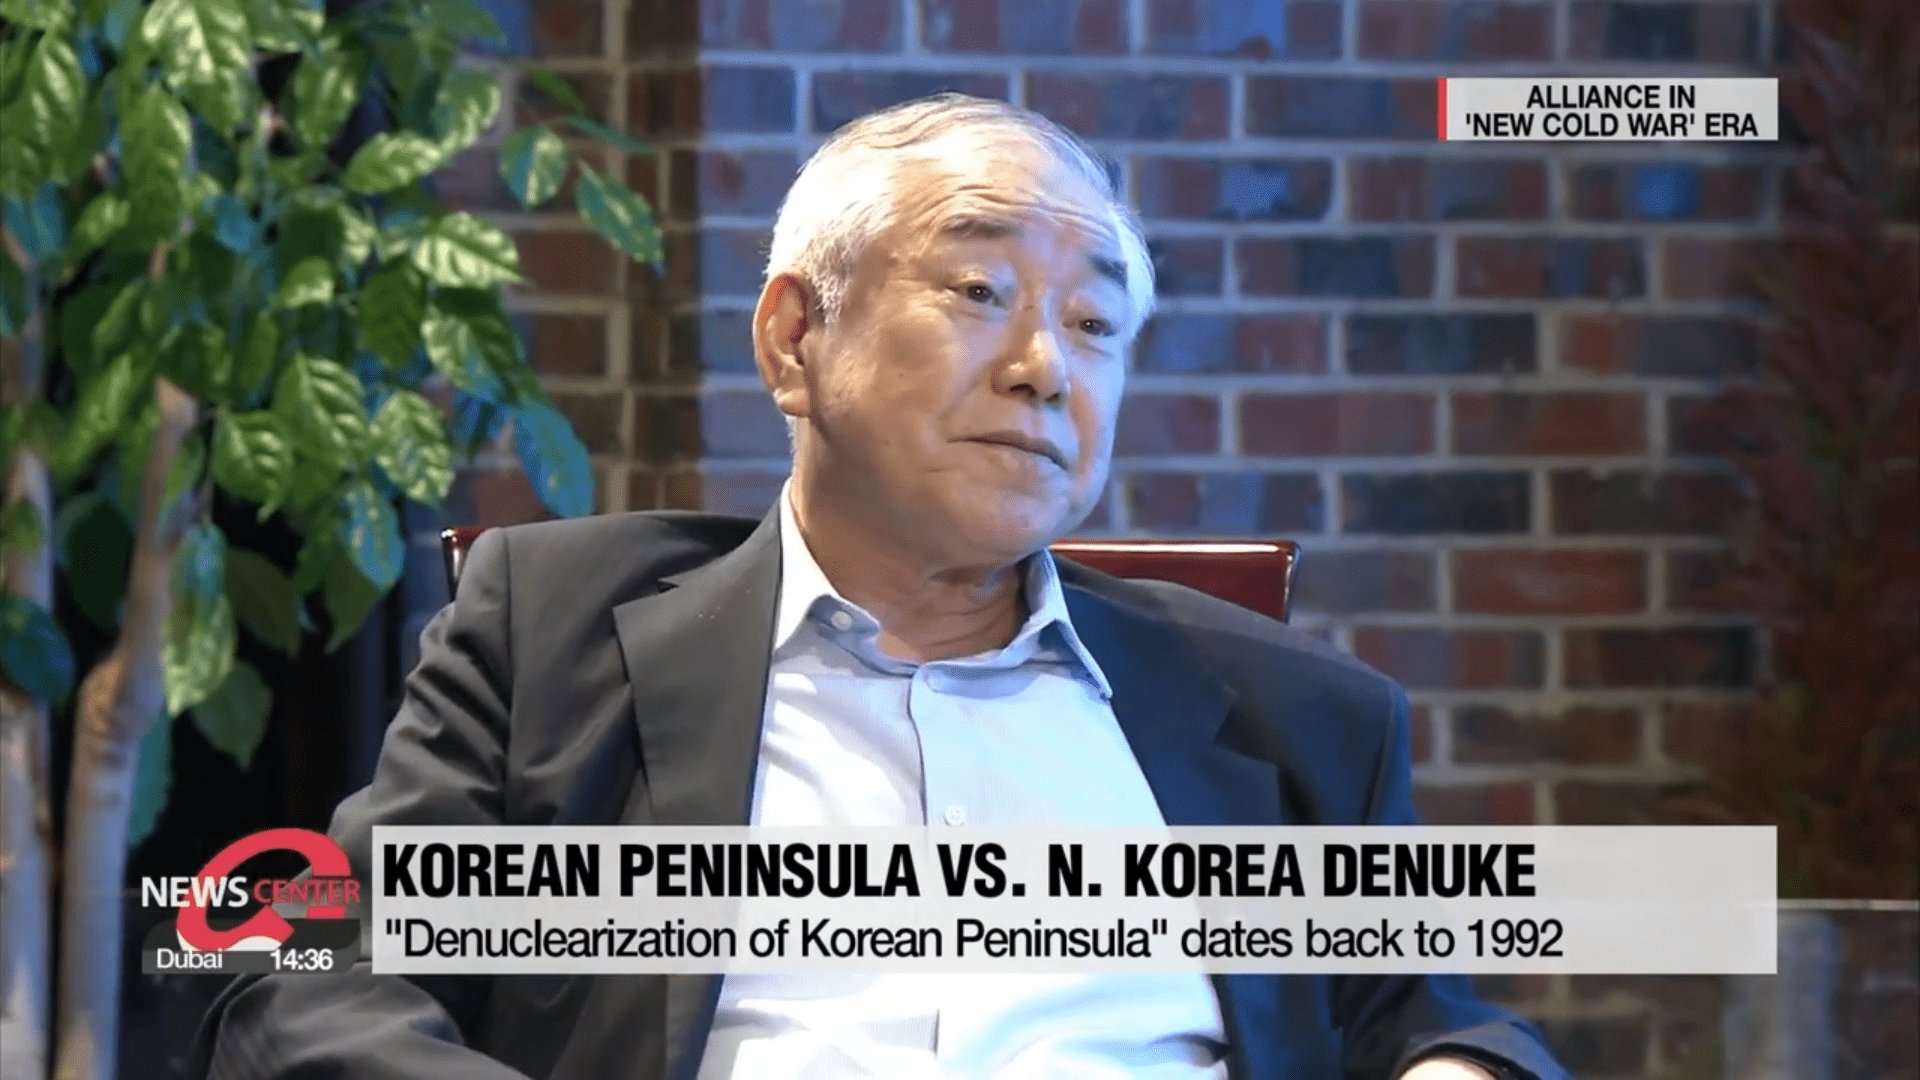 U.S. Alliance is Bedrock of S. Korea's Foreign Policy, But Seoul Can't Join...